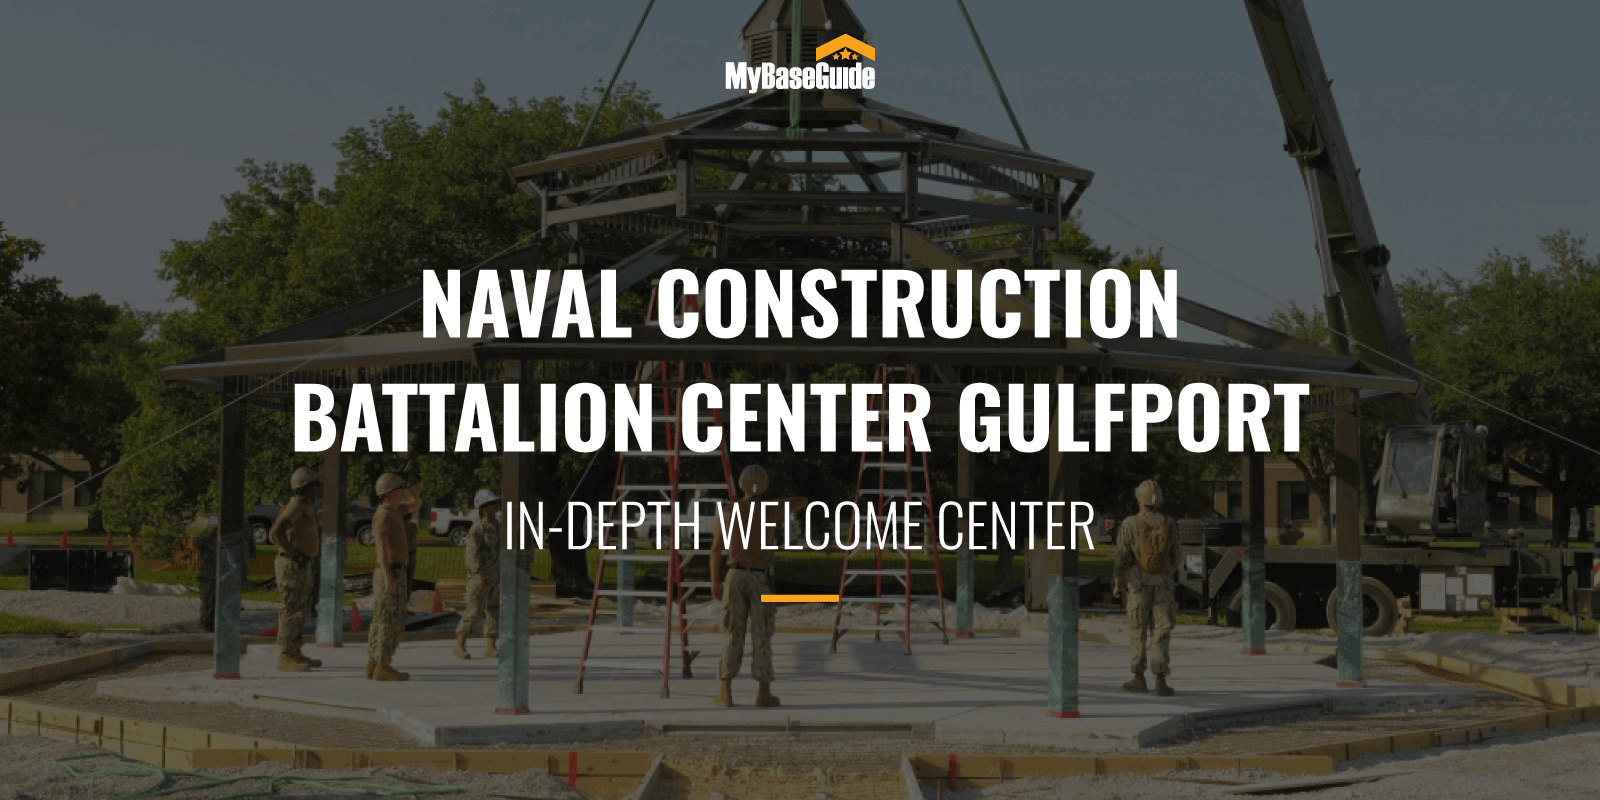 NCBC Gulfport In-Depth Welcome Center